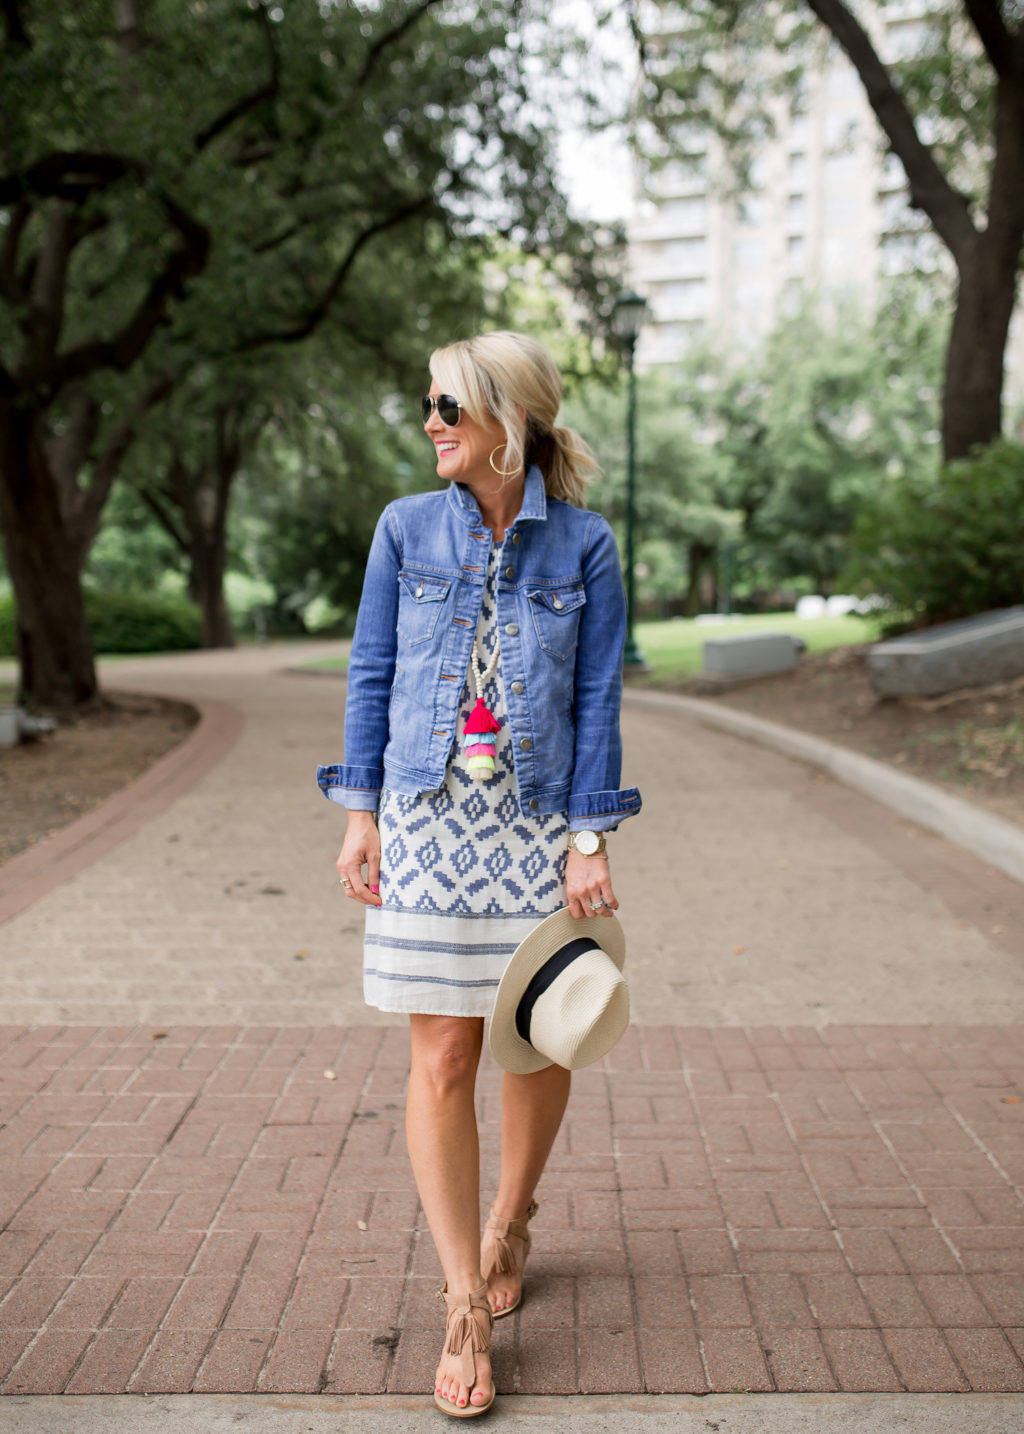 jean jacket in summer with sundress and tassel necklace